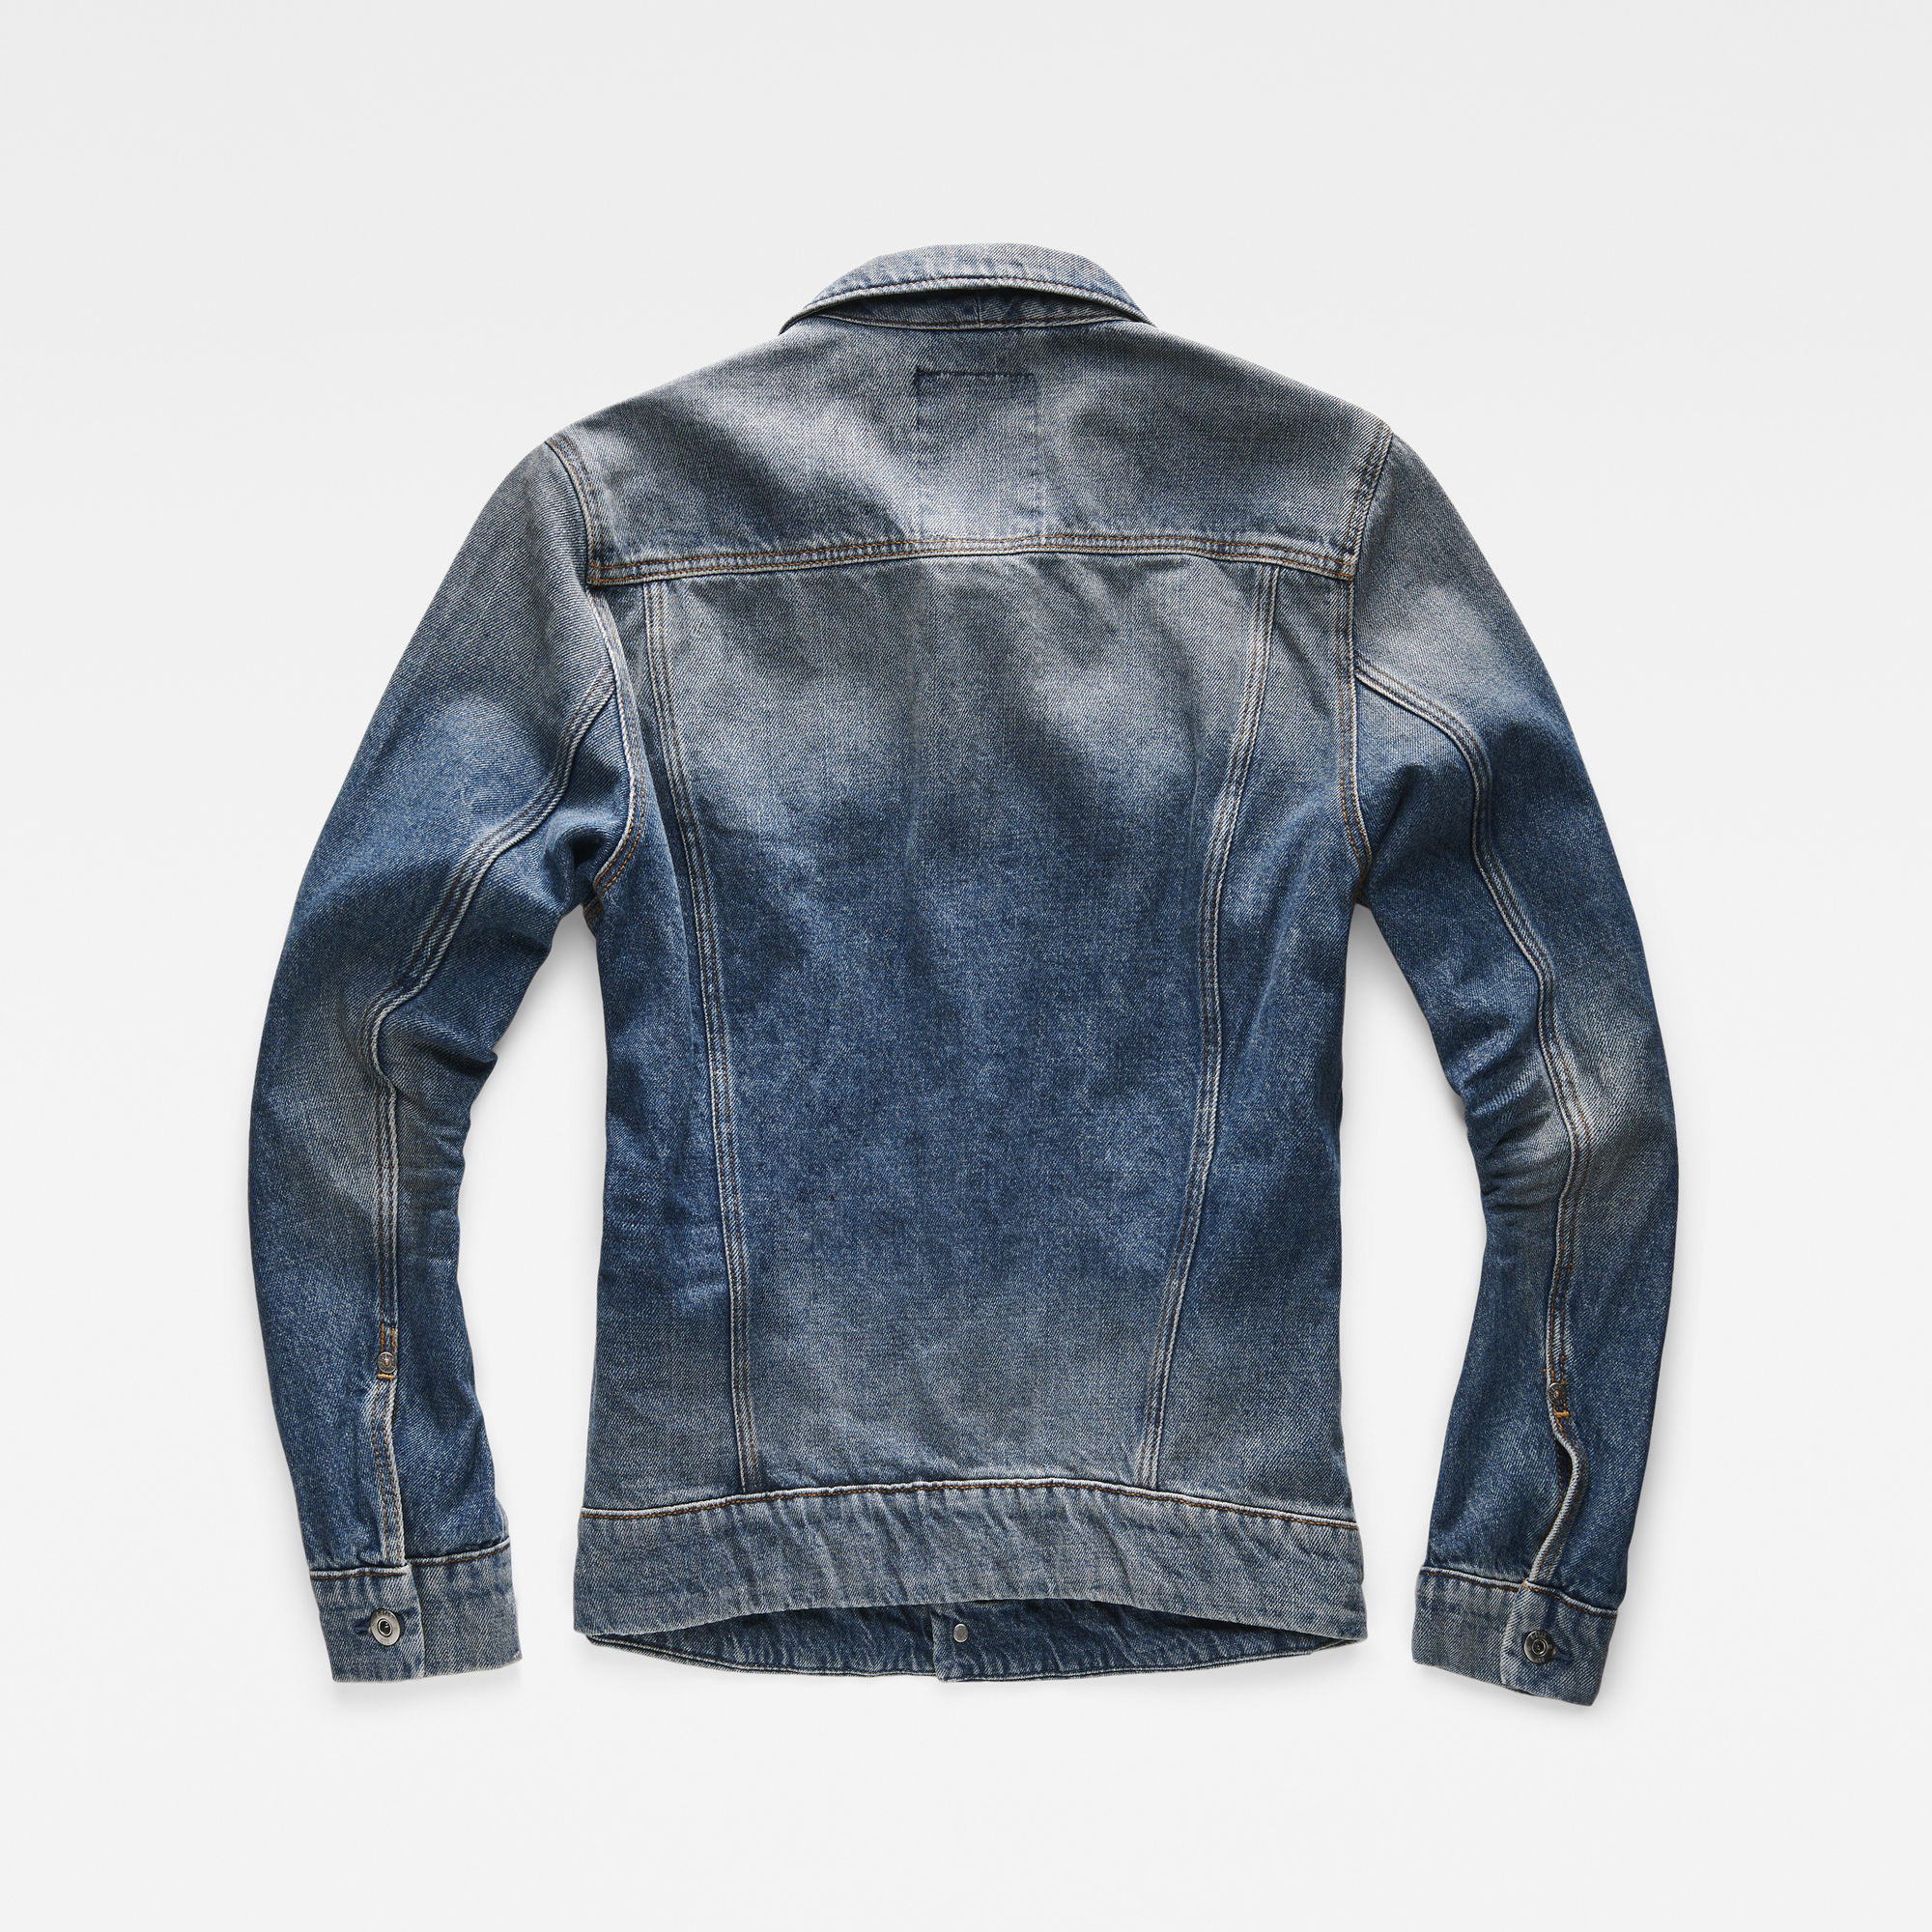 3301 Boyfriend Denim Jacket